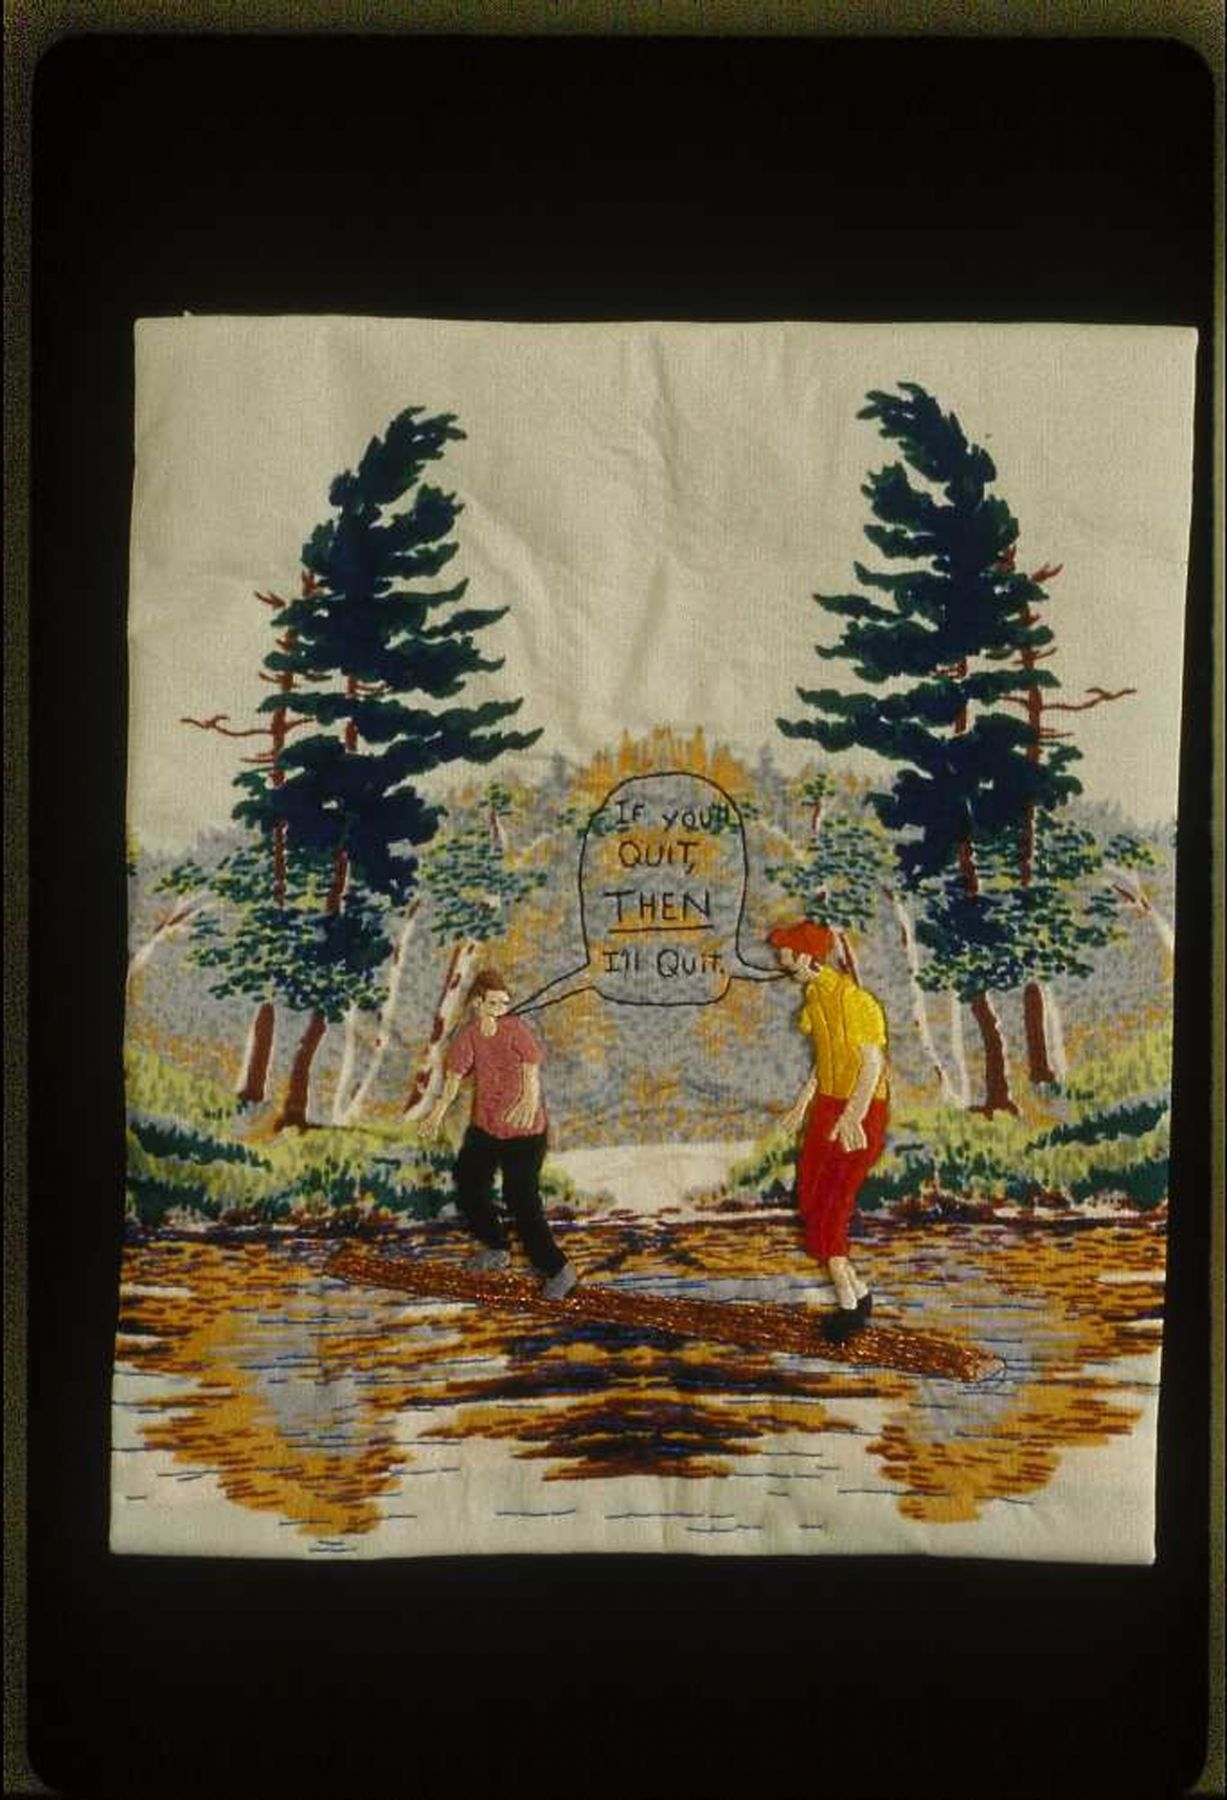 Darrel Morris, Log Rolling (SOLD), 2008, embroidery and applique, 11 1/4 x 9 1/2 inches